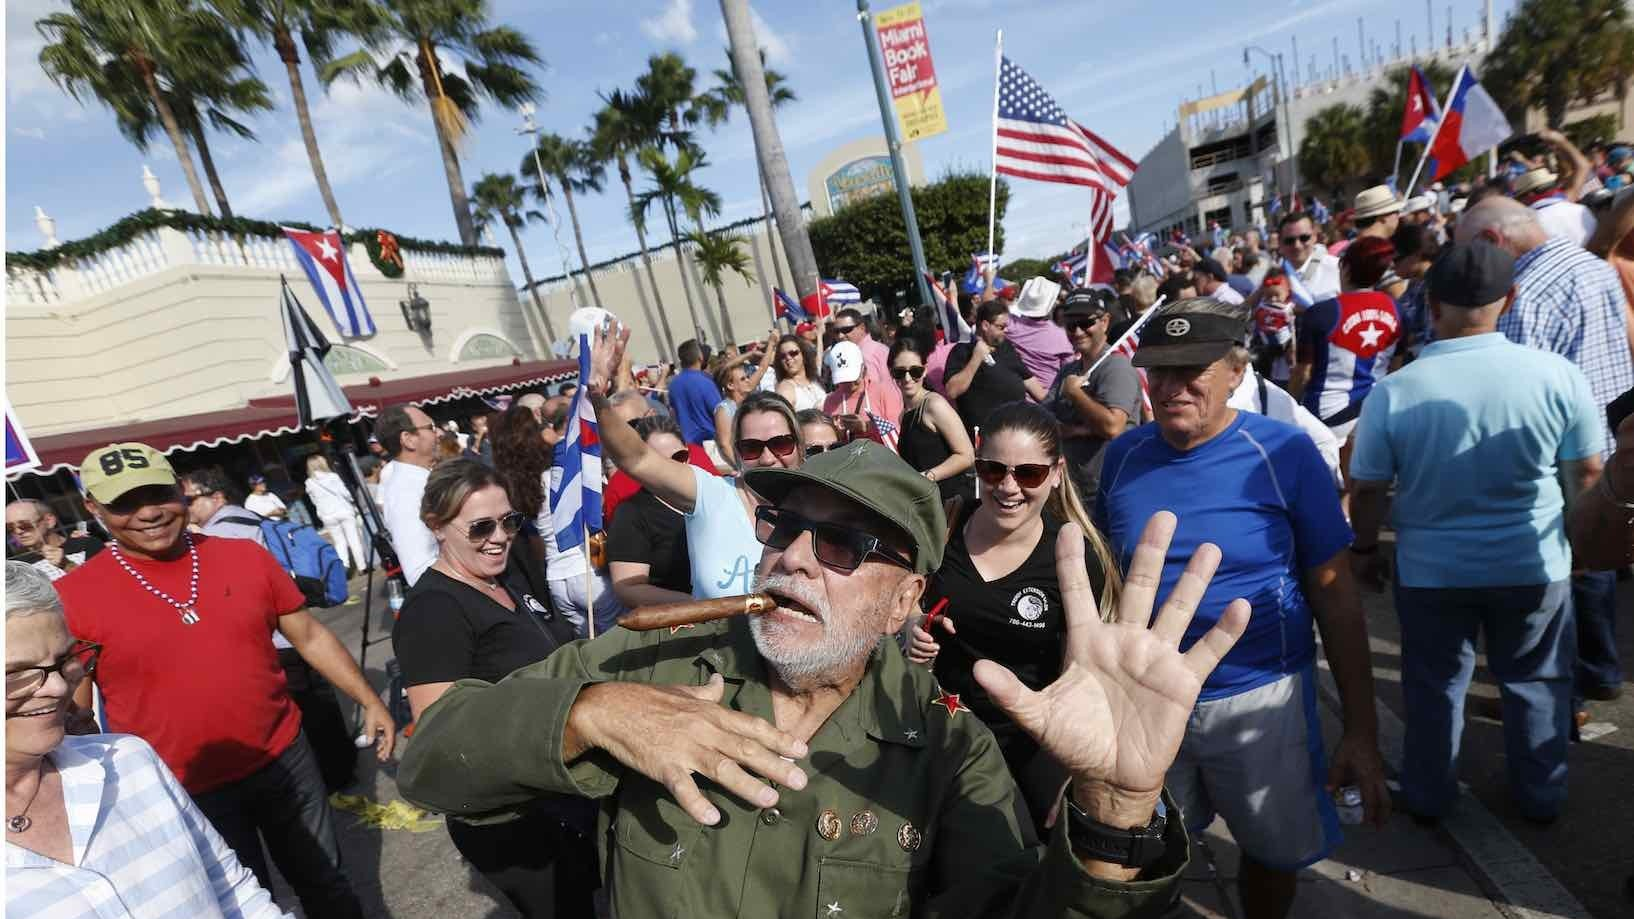 Miami and Havana reacted differently to the death of Fidel Castro